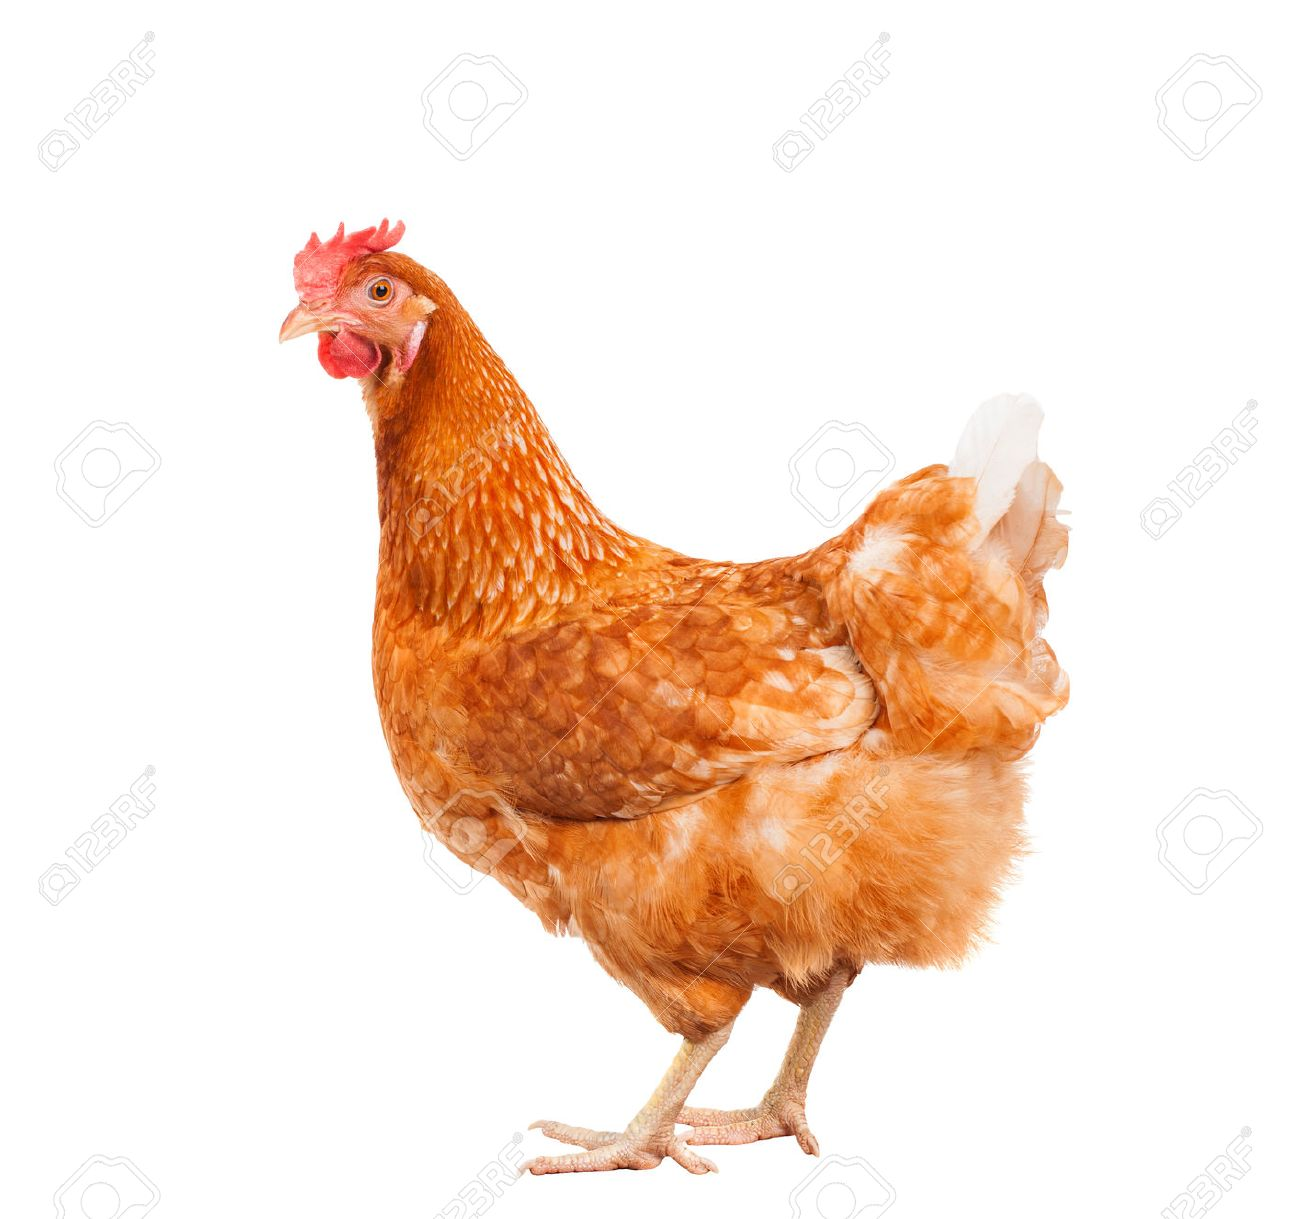 c1e55379d full body of brown chicken hen standing isolated white background use for  farm animals and livestock